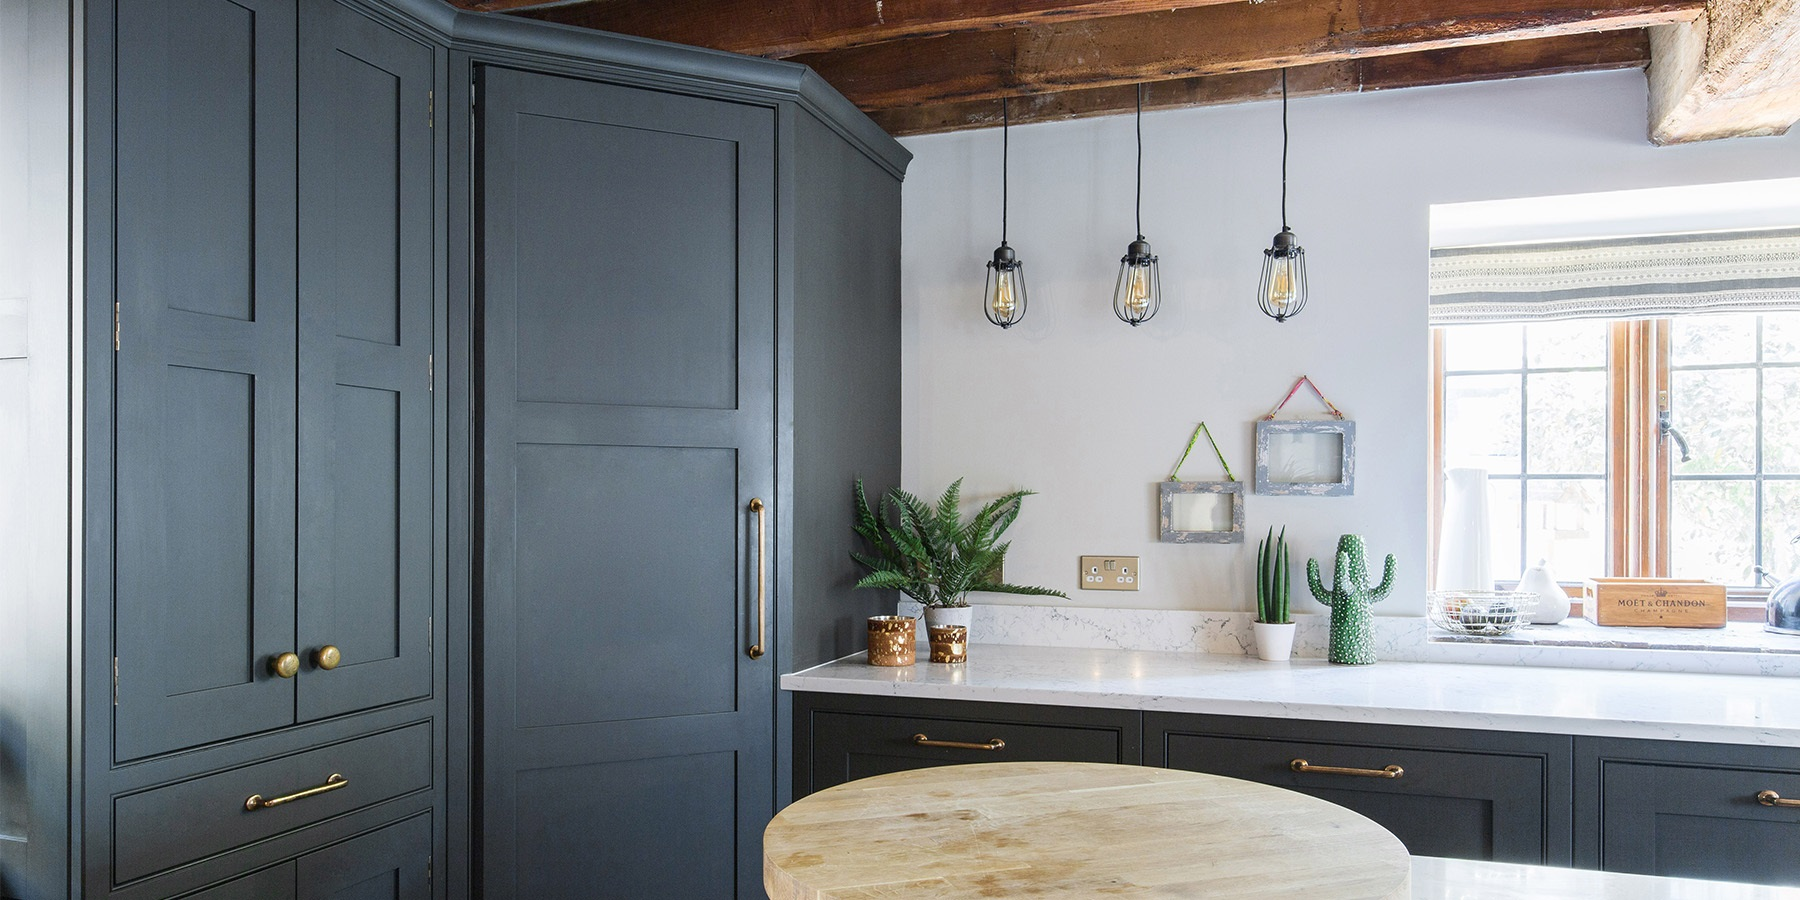 Burlanes Bespoke Shaker Kitchen - Handmade rustic style kitchen with white worktops and beautiful pendant lighting.